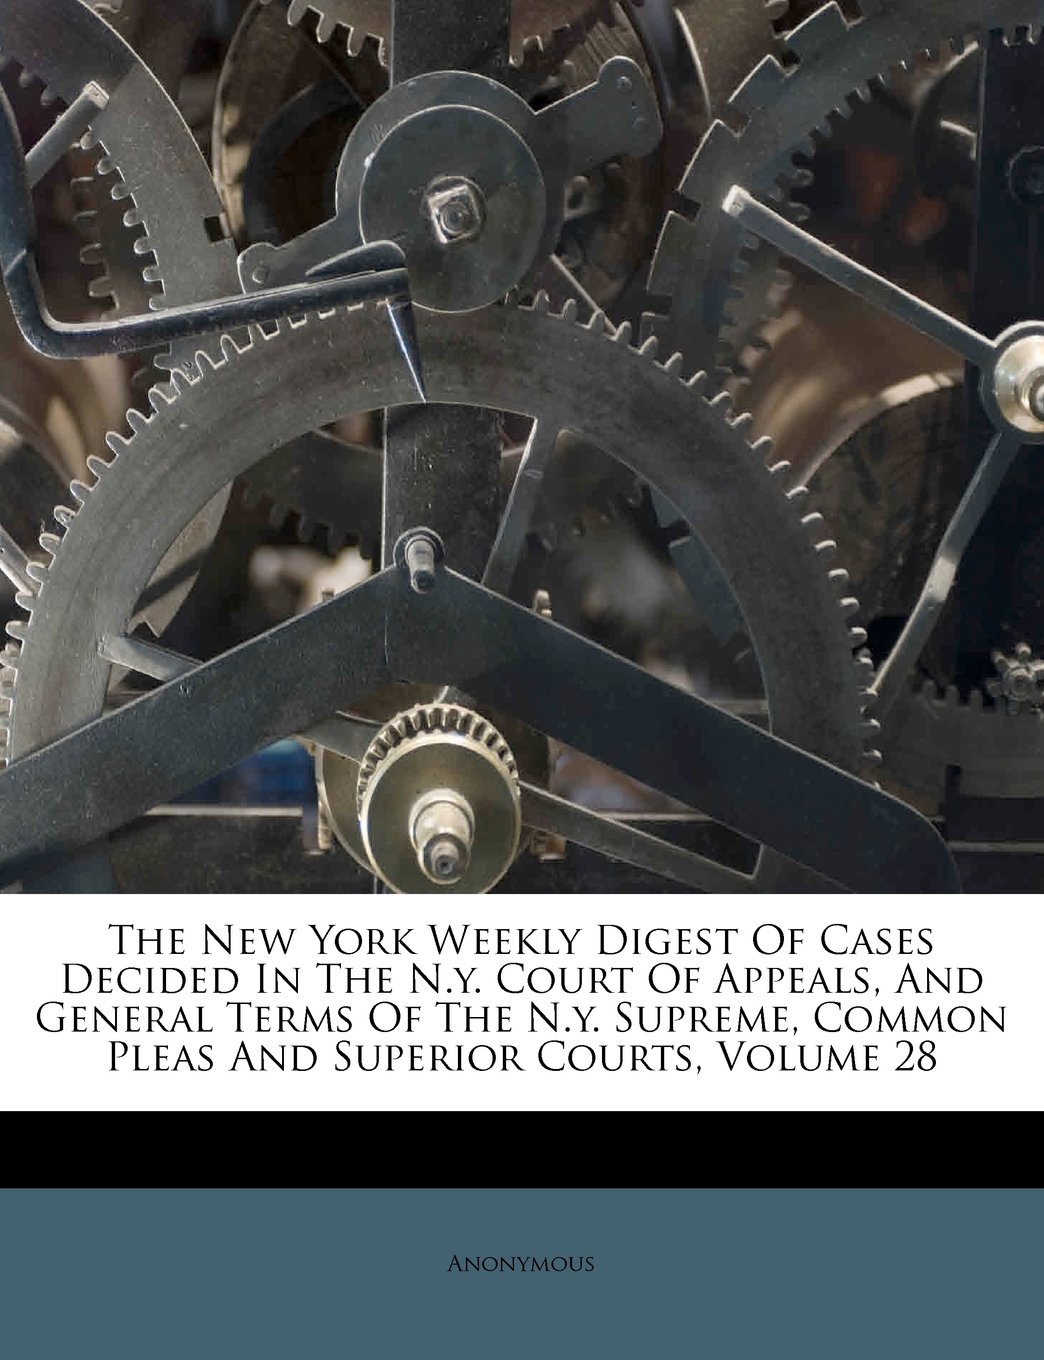 The New York Weekly Digest Of Cases Decided In The N.y. Court Of Appeals, And General Terms Of The N.y. Supreme, Common Pleas And Superior Courts, Volume 28 ebook